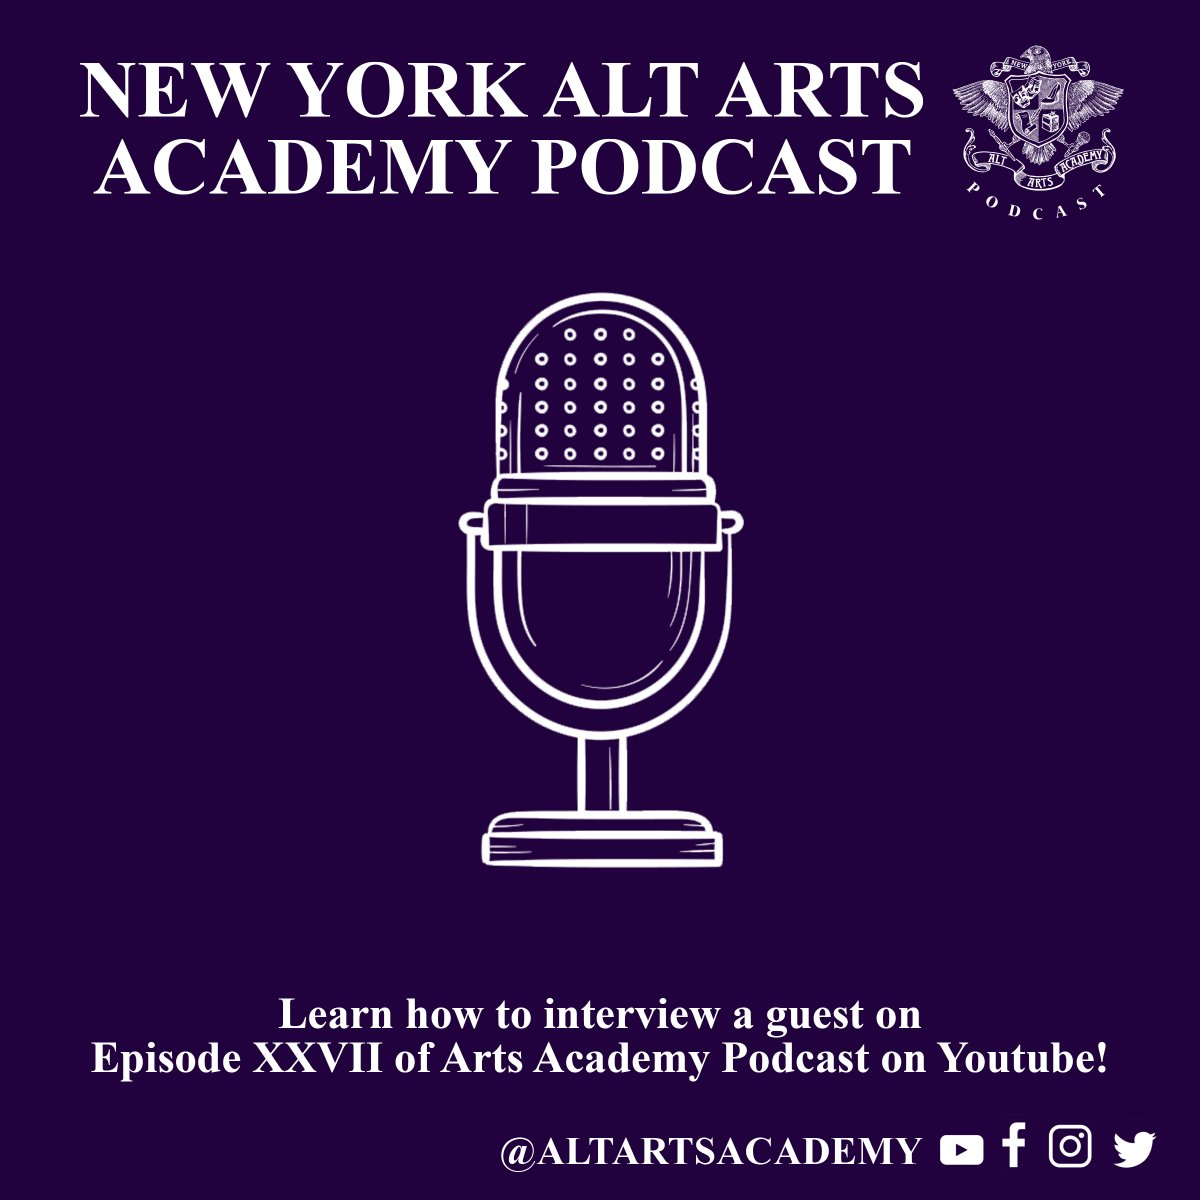 Want to learn how to interview a guest? Learn how in episode 27 of Arts Academy podcast with @varnado, @roxxyhaze and special guest @RealJasminLeigh!  Watch the full episode here: https://youtu.be/17eYkdST6r8  Want the audio only version? Listen here http://artsacademypodcast.compic.twitter.com/EqV6YsGyxQ